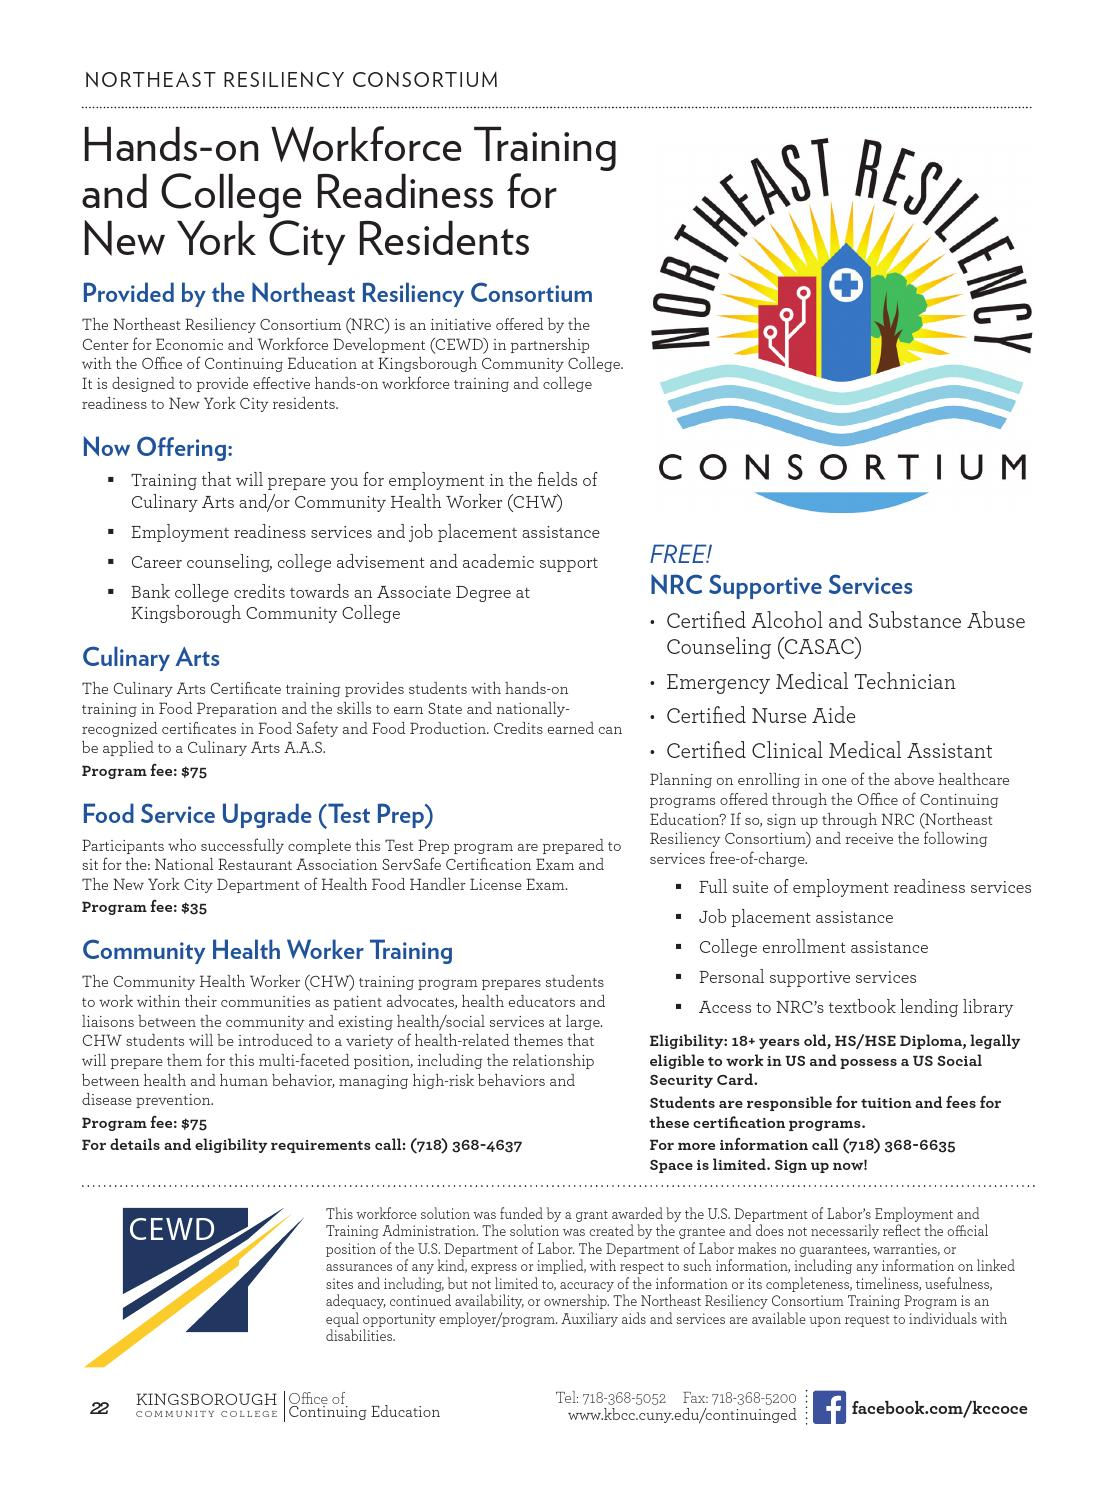 Continuing Education Spring 2016 By Kingsborough Office Of